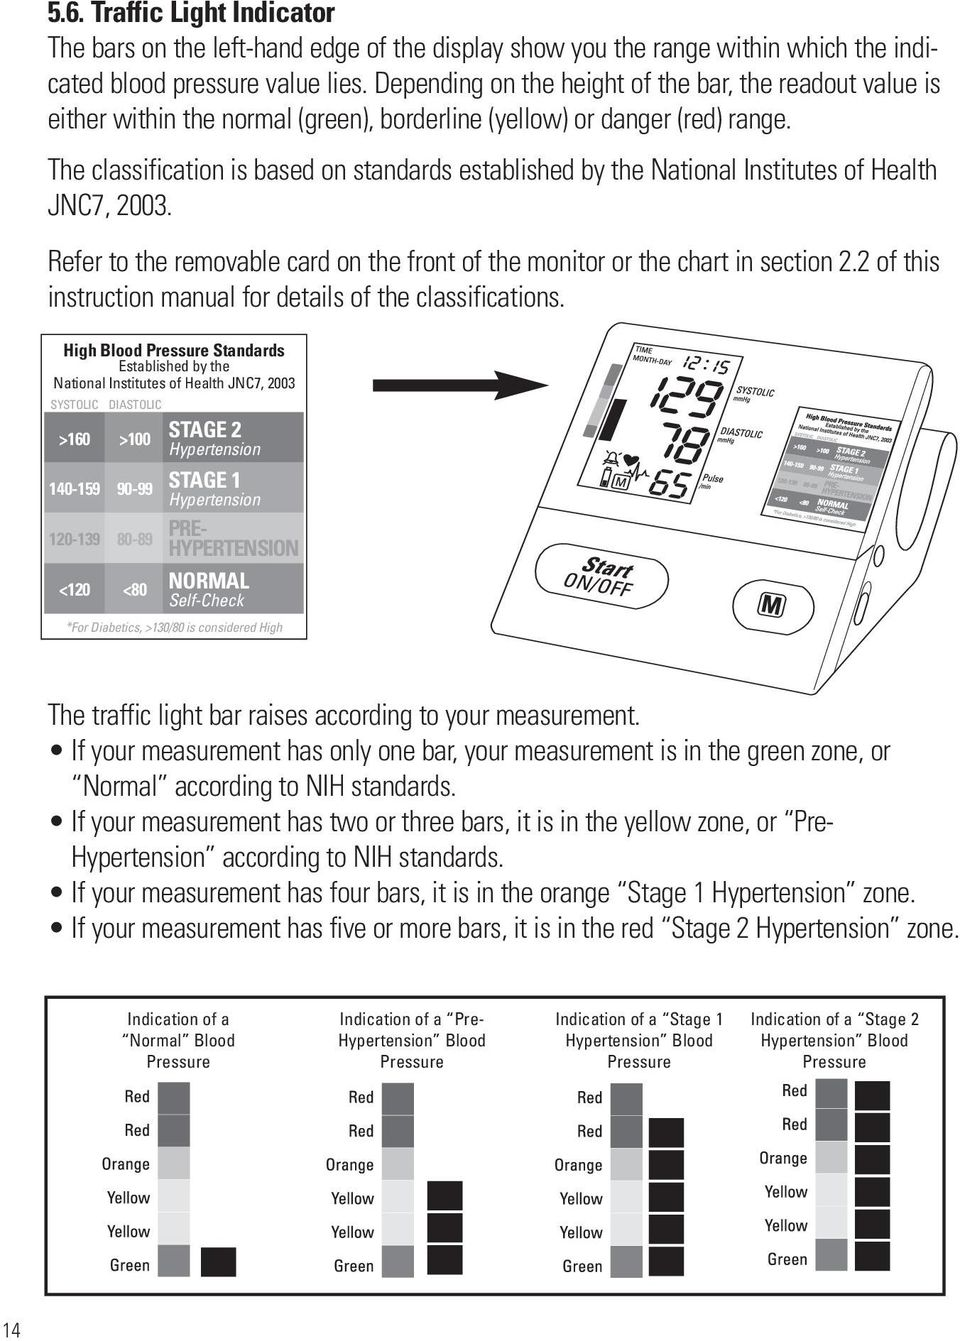 The classification is based on standards established by the National Institutes of Health JNC7, 2003. Refer to the removable card on the front of the monitor or the chart in section 2.